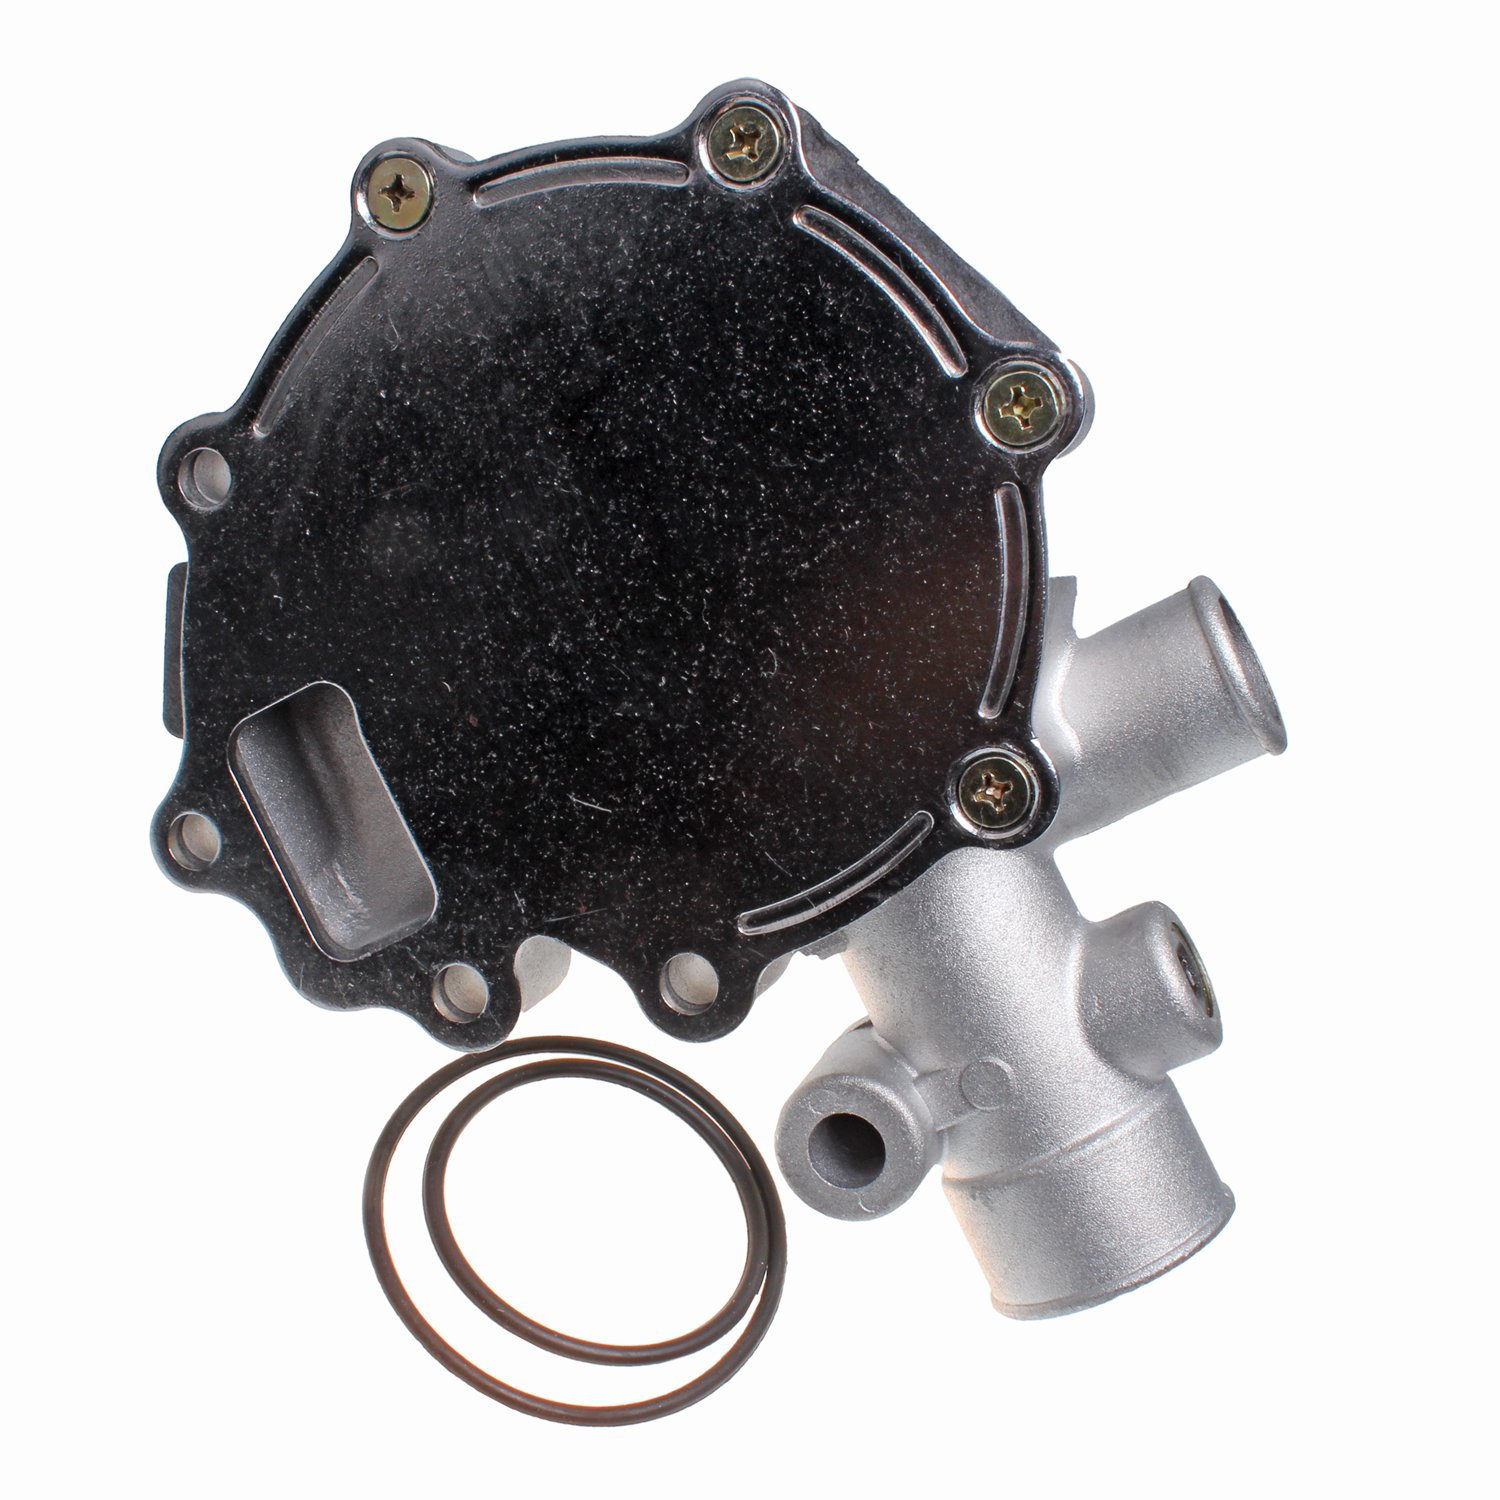 Mover Parts Water Pump 1457847 for HYSTER H2.00-3.00-3.20XM PERKINS 700 Series Engines